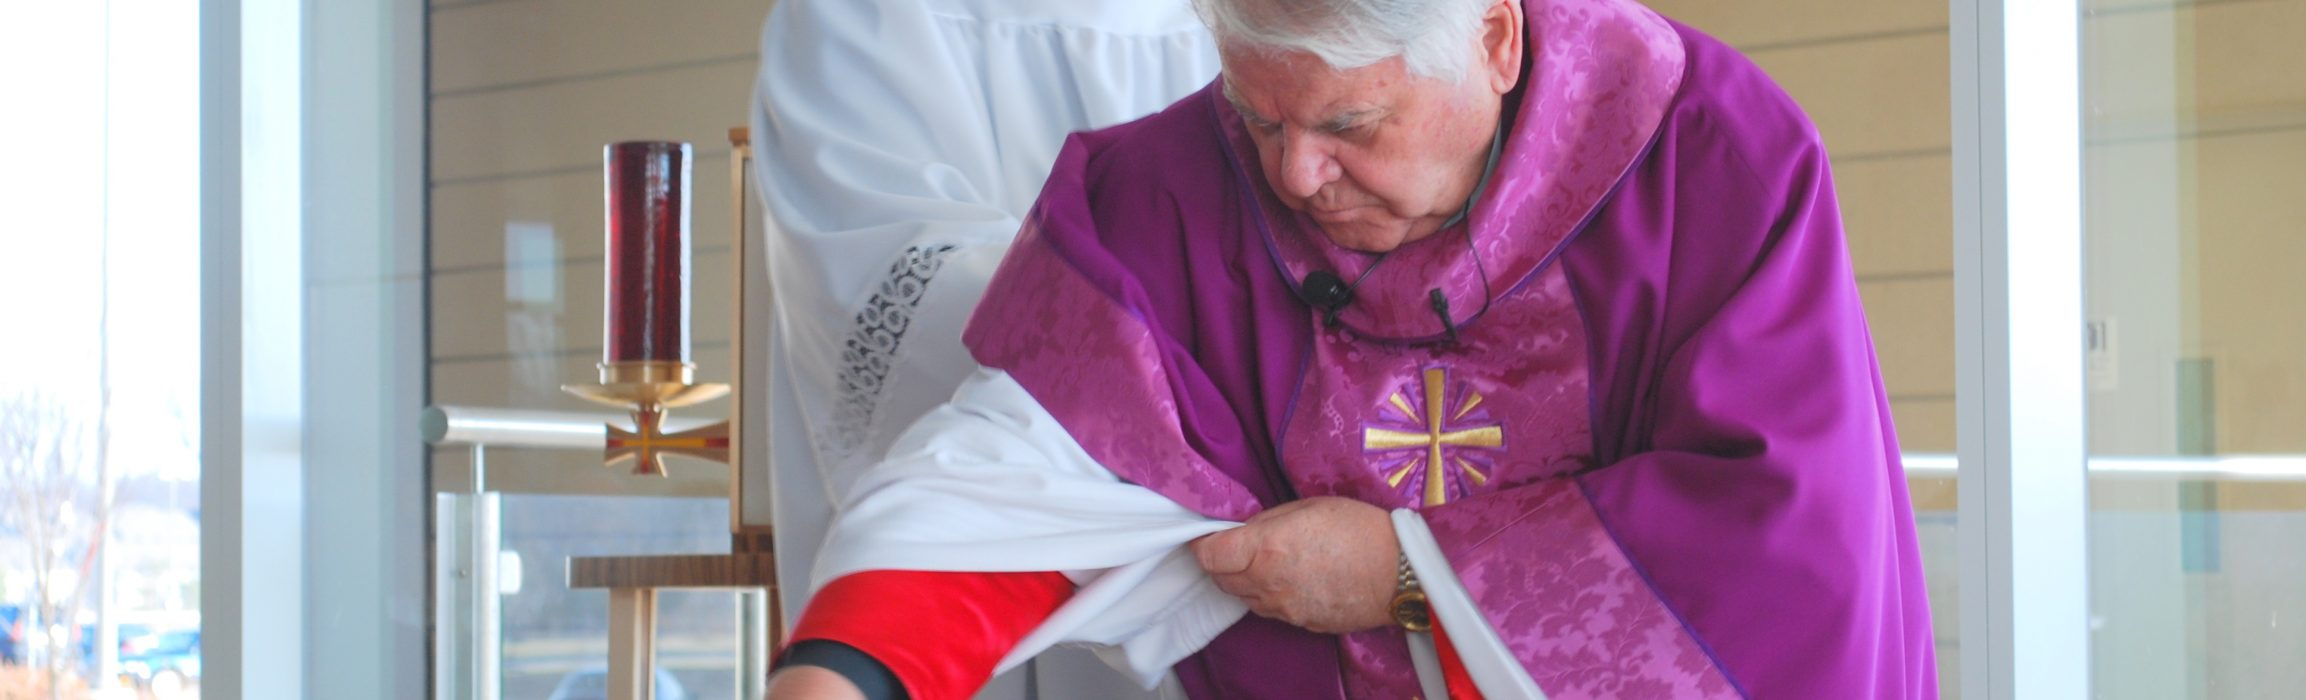 Oils of Chrism — a sign of God's mercy - Today's Catholic